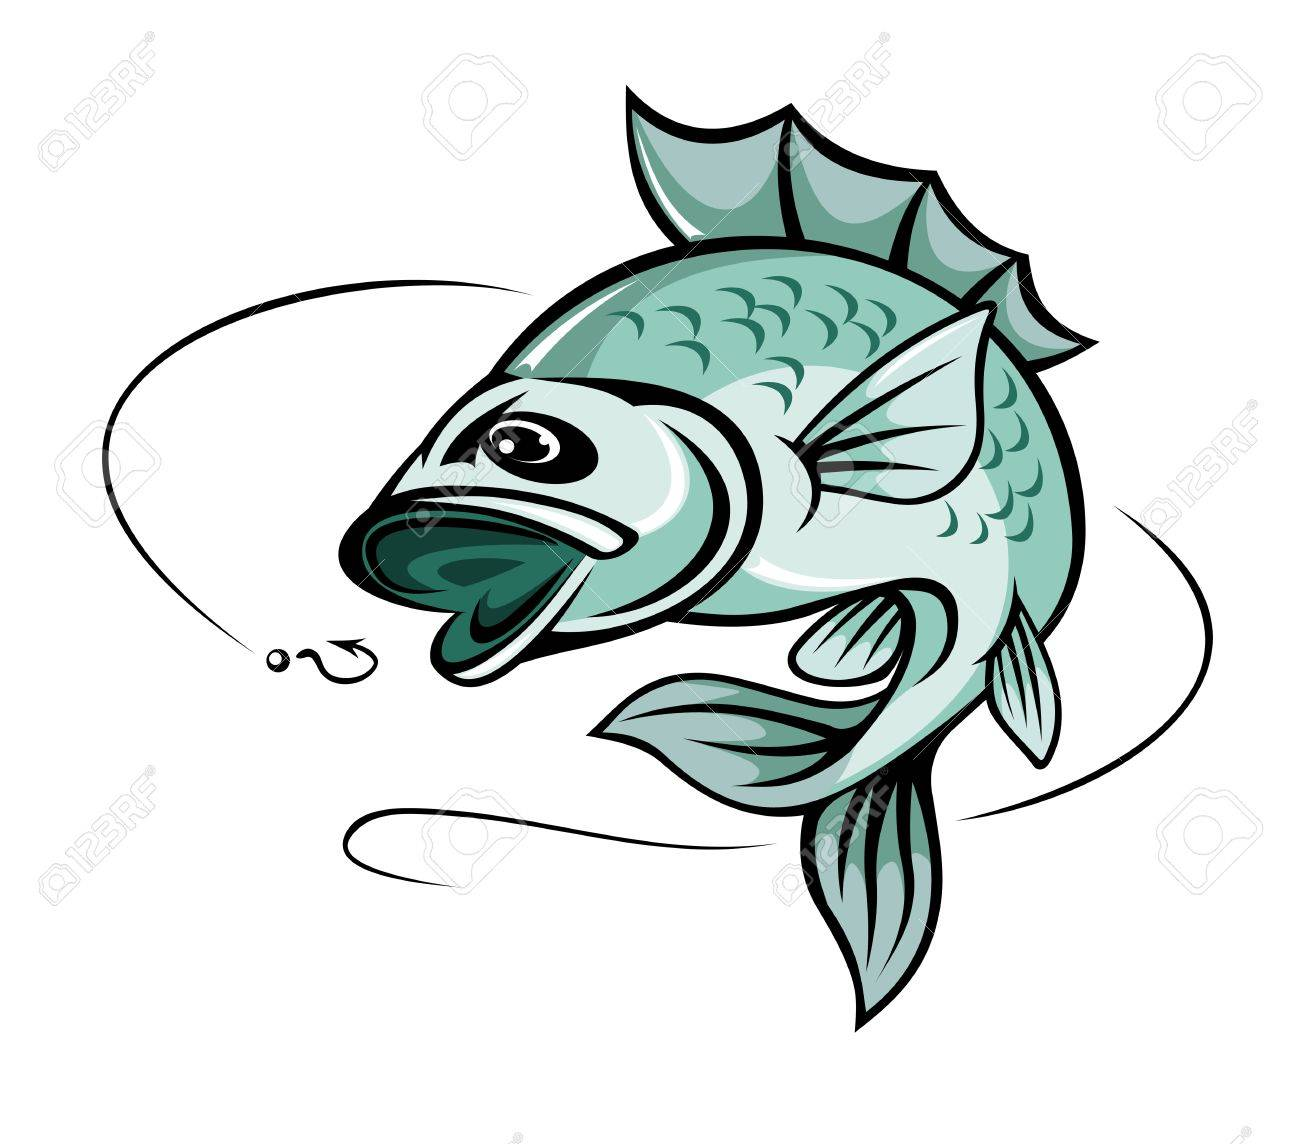 Jumping Carp Fish For Fishing Sport Symbol Royalty Free Cliparts ...